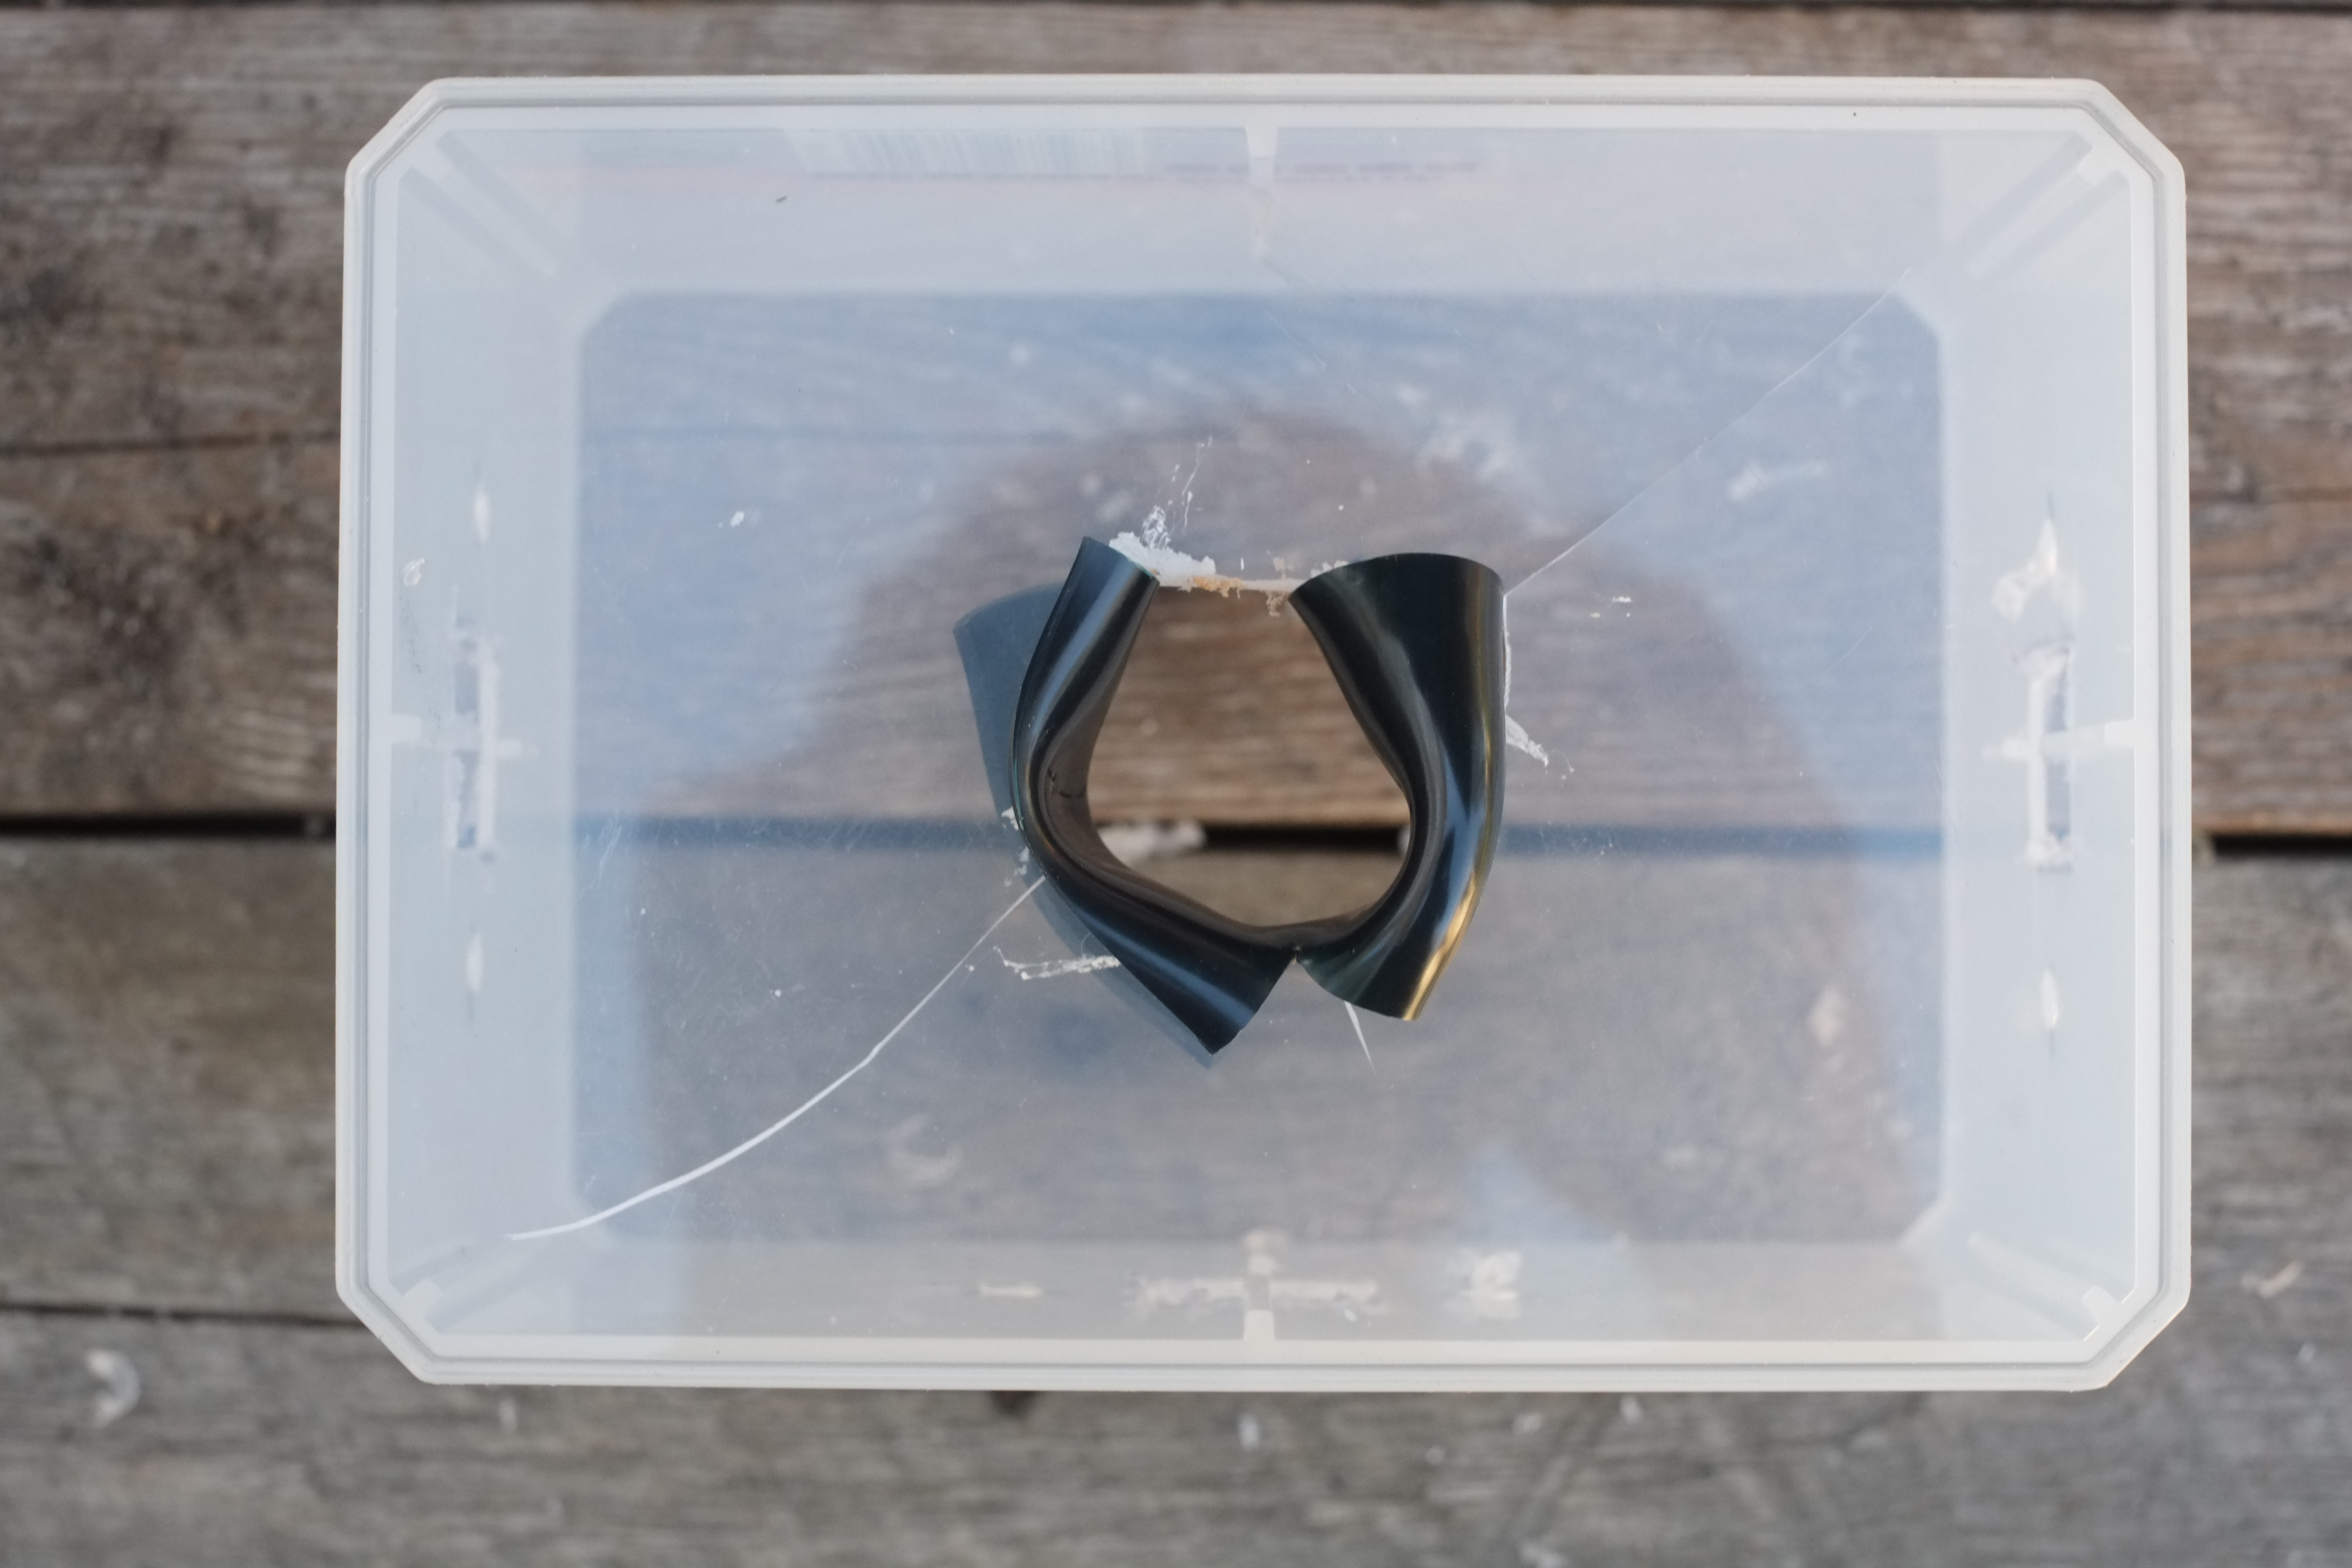 Picture of Preparing the Junction Box: Making a Hole for the Inlet